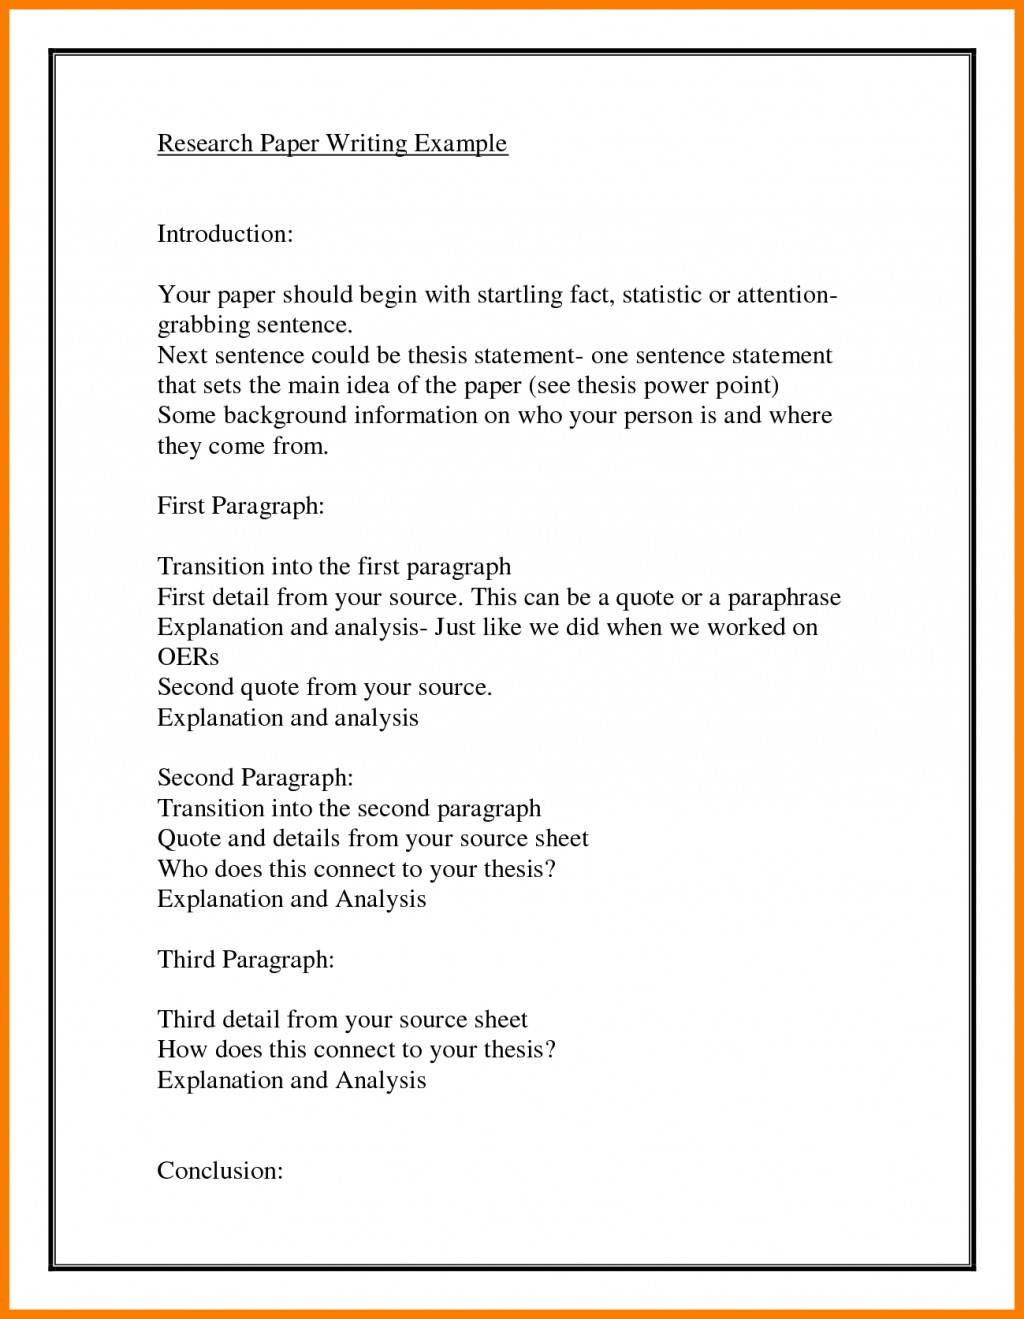 010 Research Paper Introduction Paragraph For Example Template 236912 Exceptional A Large